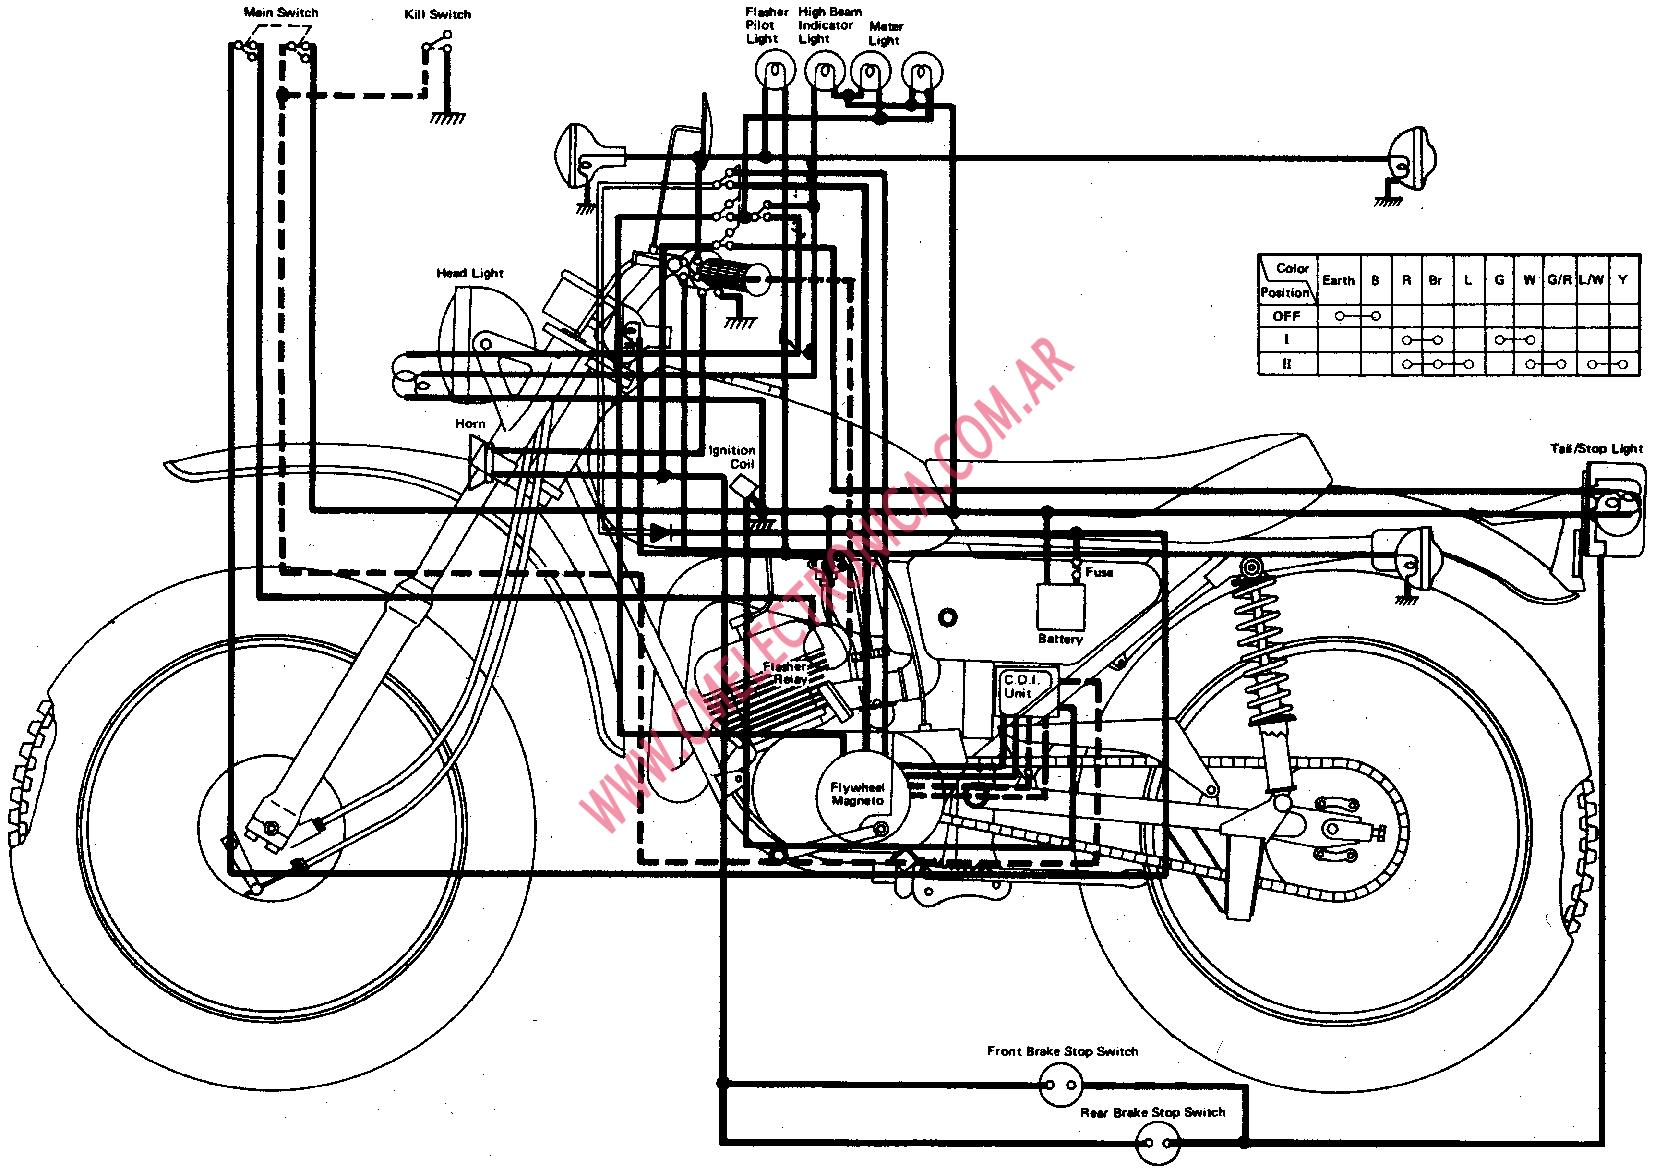 78 Yamaha Dt 100 Wiring Diagram Libraries Kawasaki Simple Schema1974